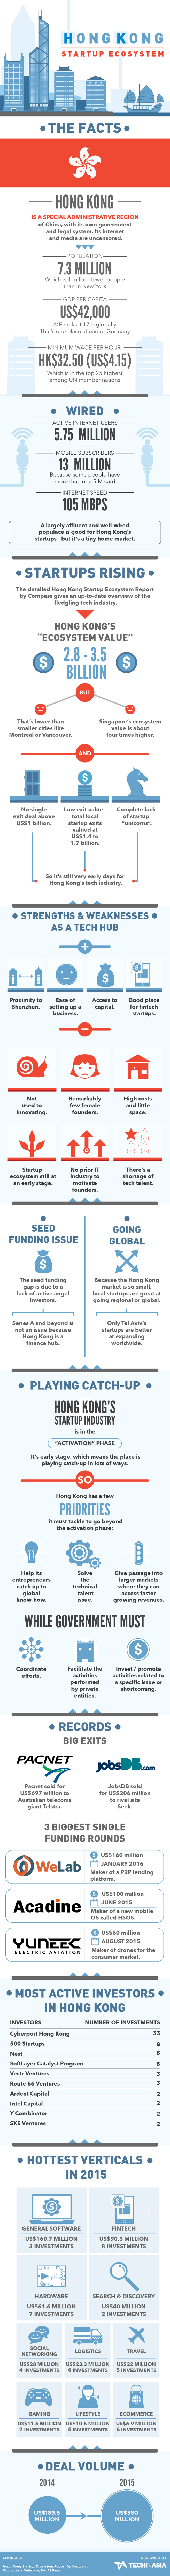 startups in hong kong infographic